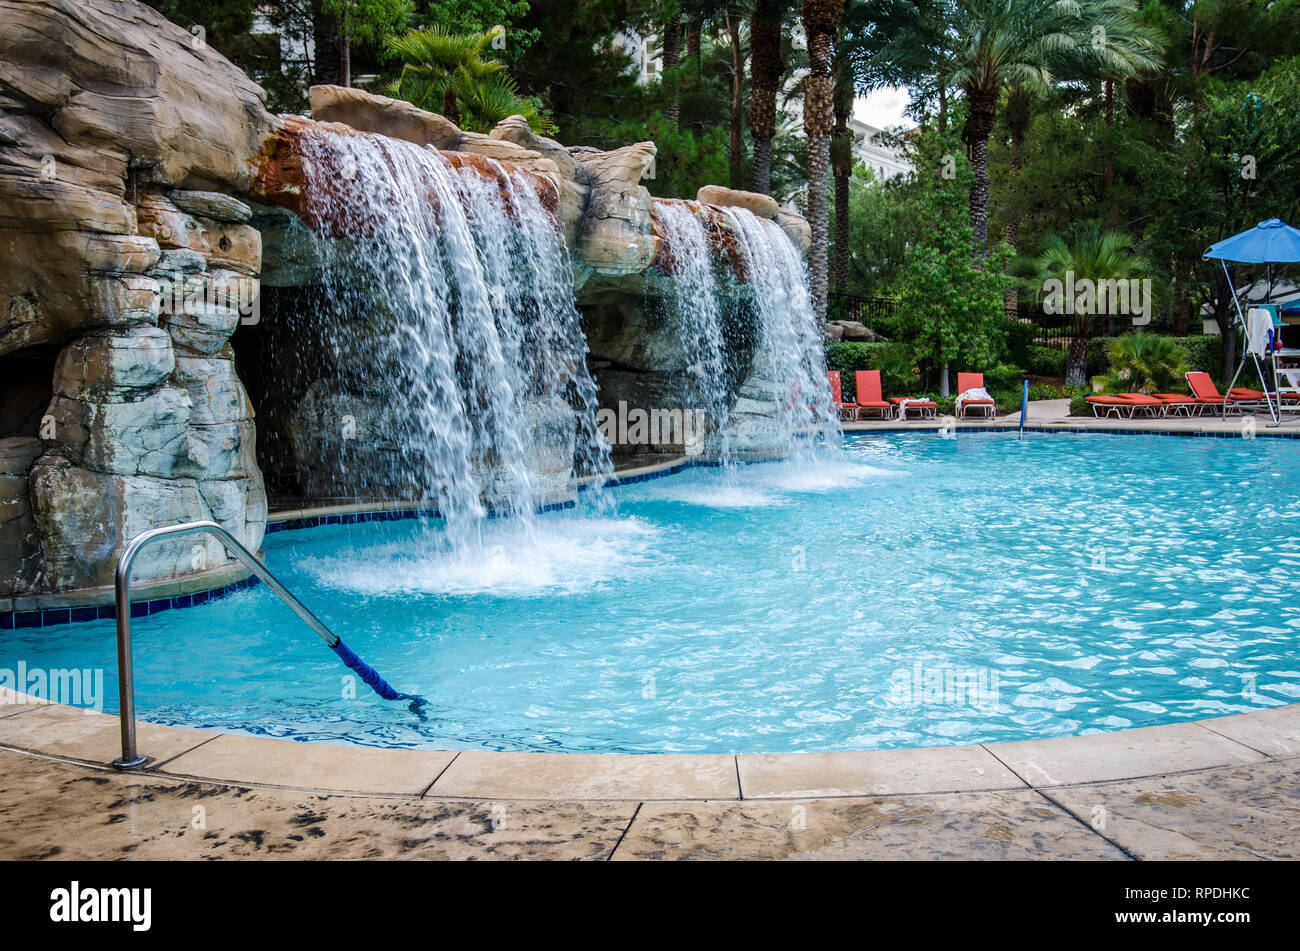 Las Vegas Nevada August 4 2018 Outdoor Tropical Pool Area At The Jw Marriott Hotel And Resort With A Waterfall Pool Stock Photo Alamy